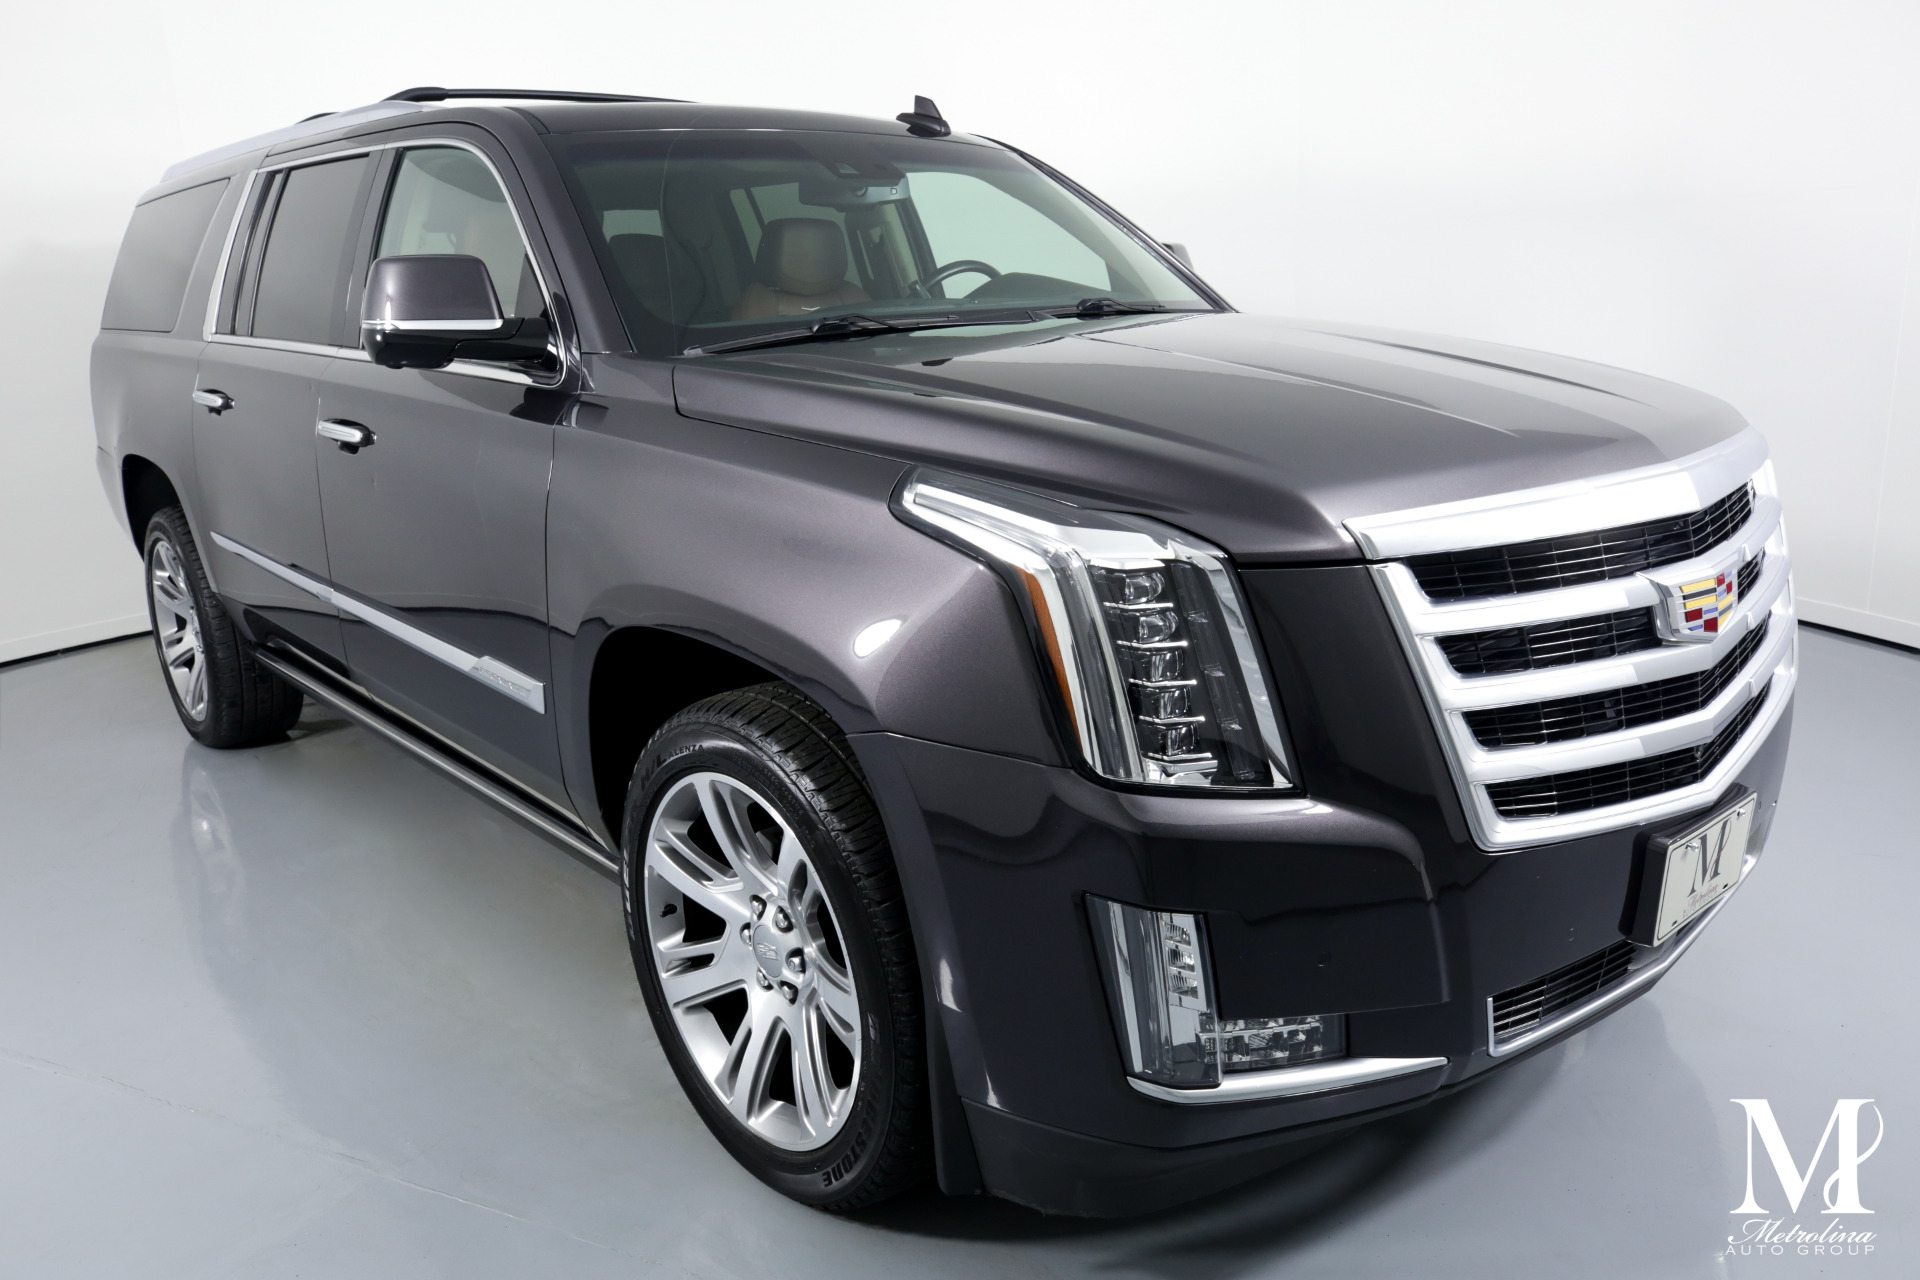 Used 2016 Cadillac Escalade ESV Premium Collection for sale $44,995 at Metrolina Auto Group in Charlotte NC 28217 - 2